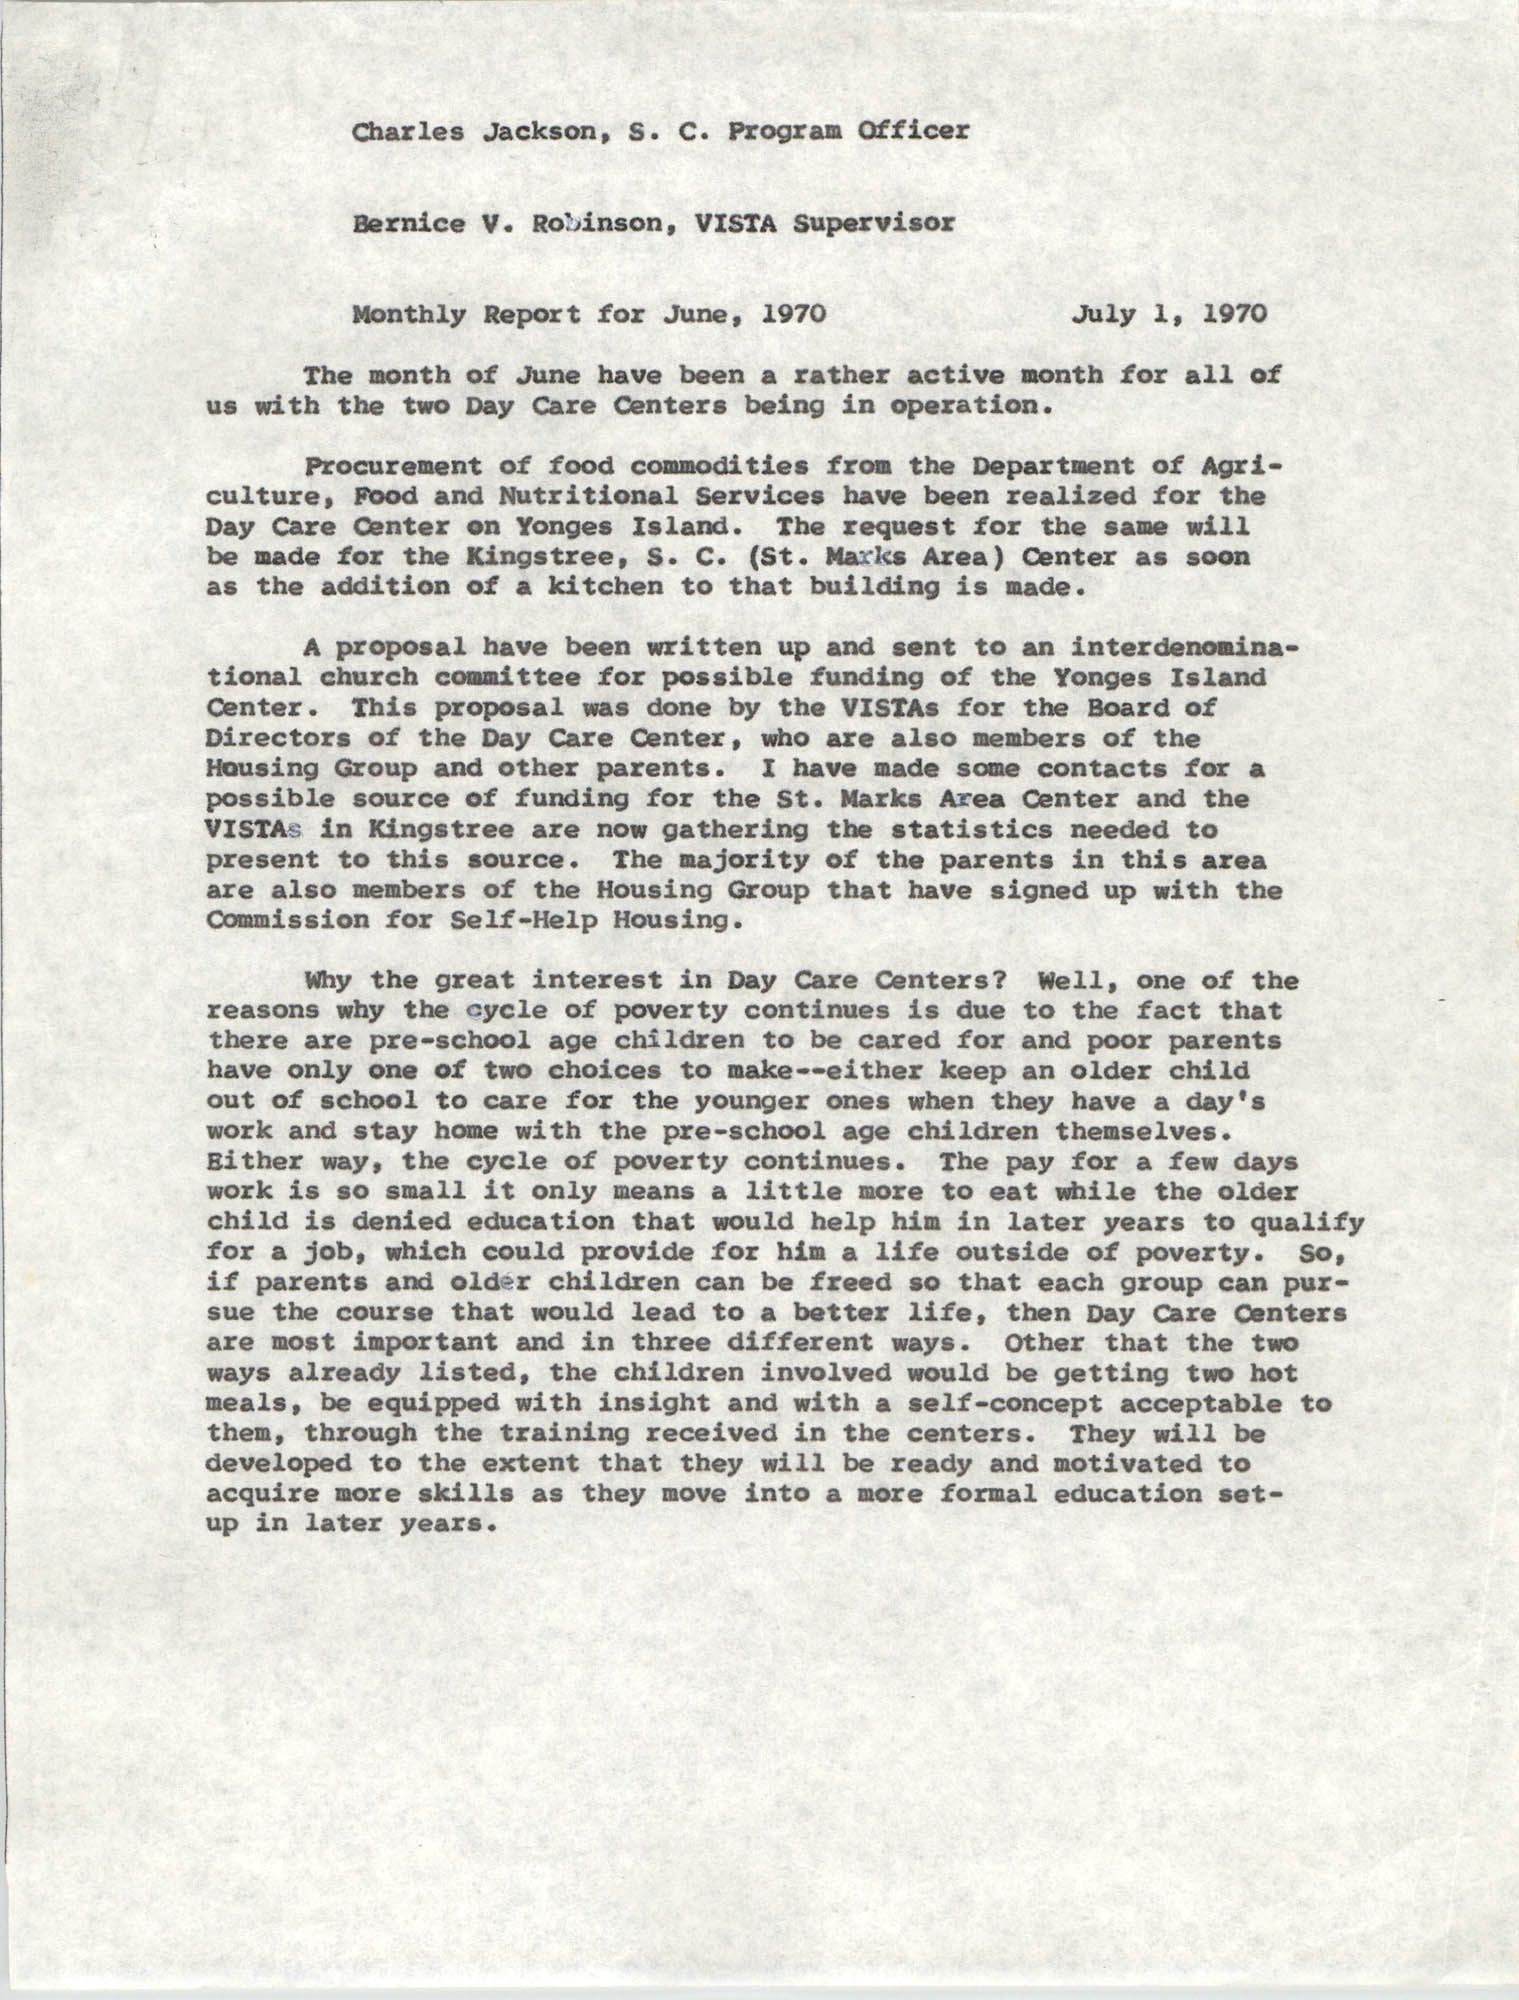 VISTA Memorandum, Monthly Progress Report, June 1970